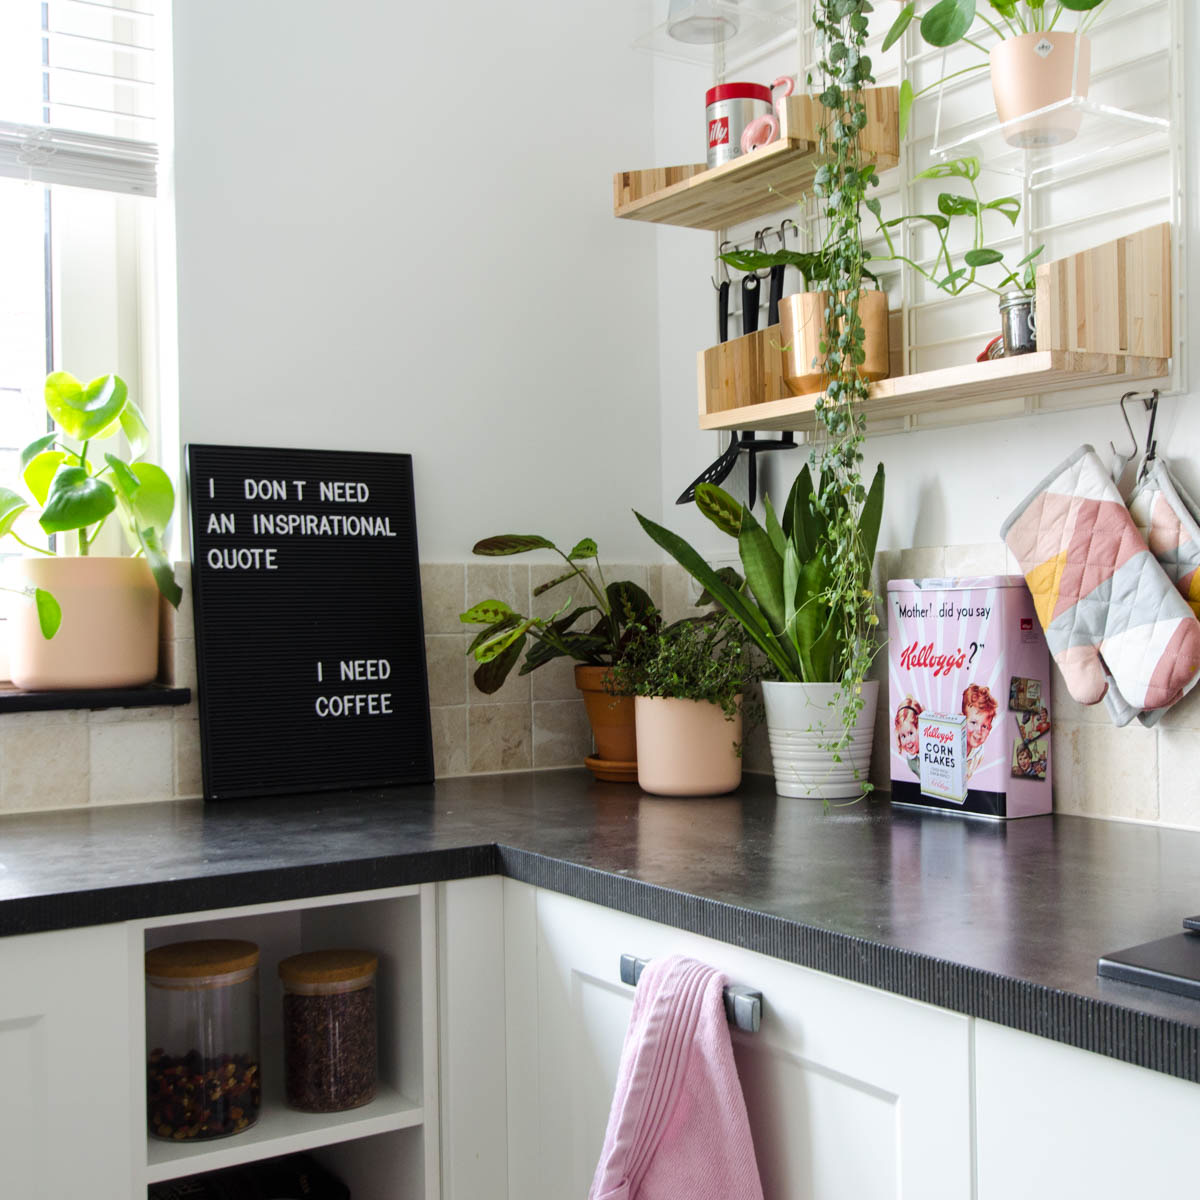 Wandrek Planten 5 Budget Items Om Je Keuken Een Mini Make Over Te Geven Styled